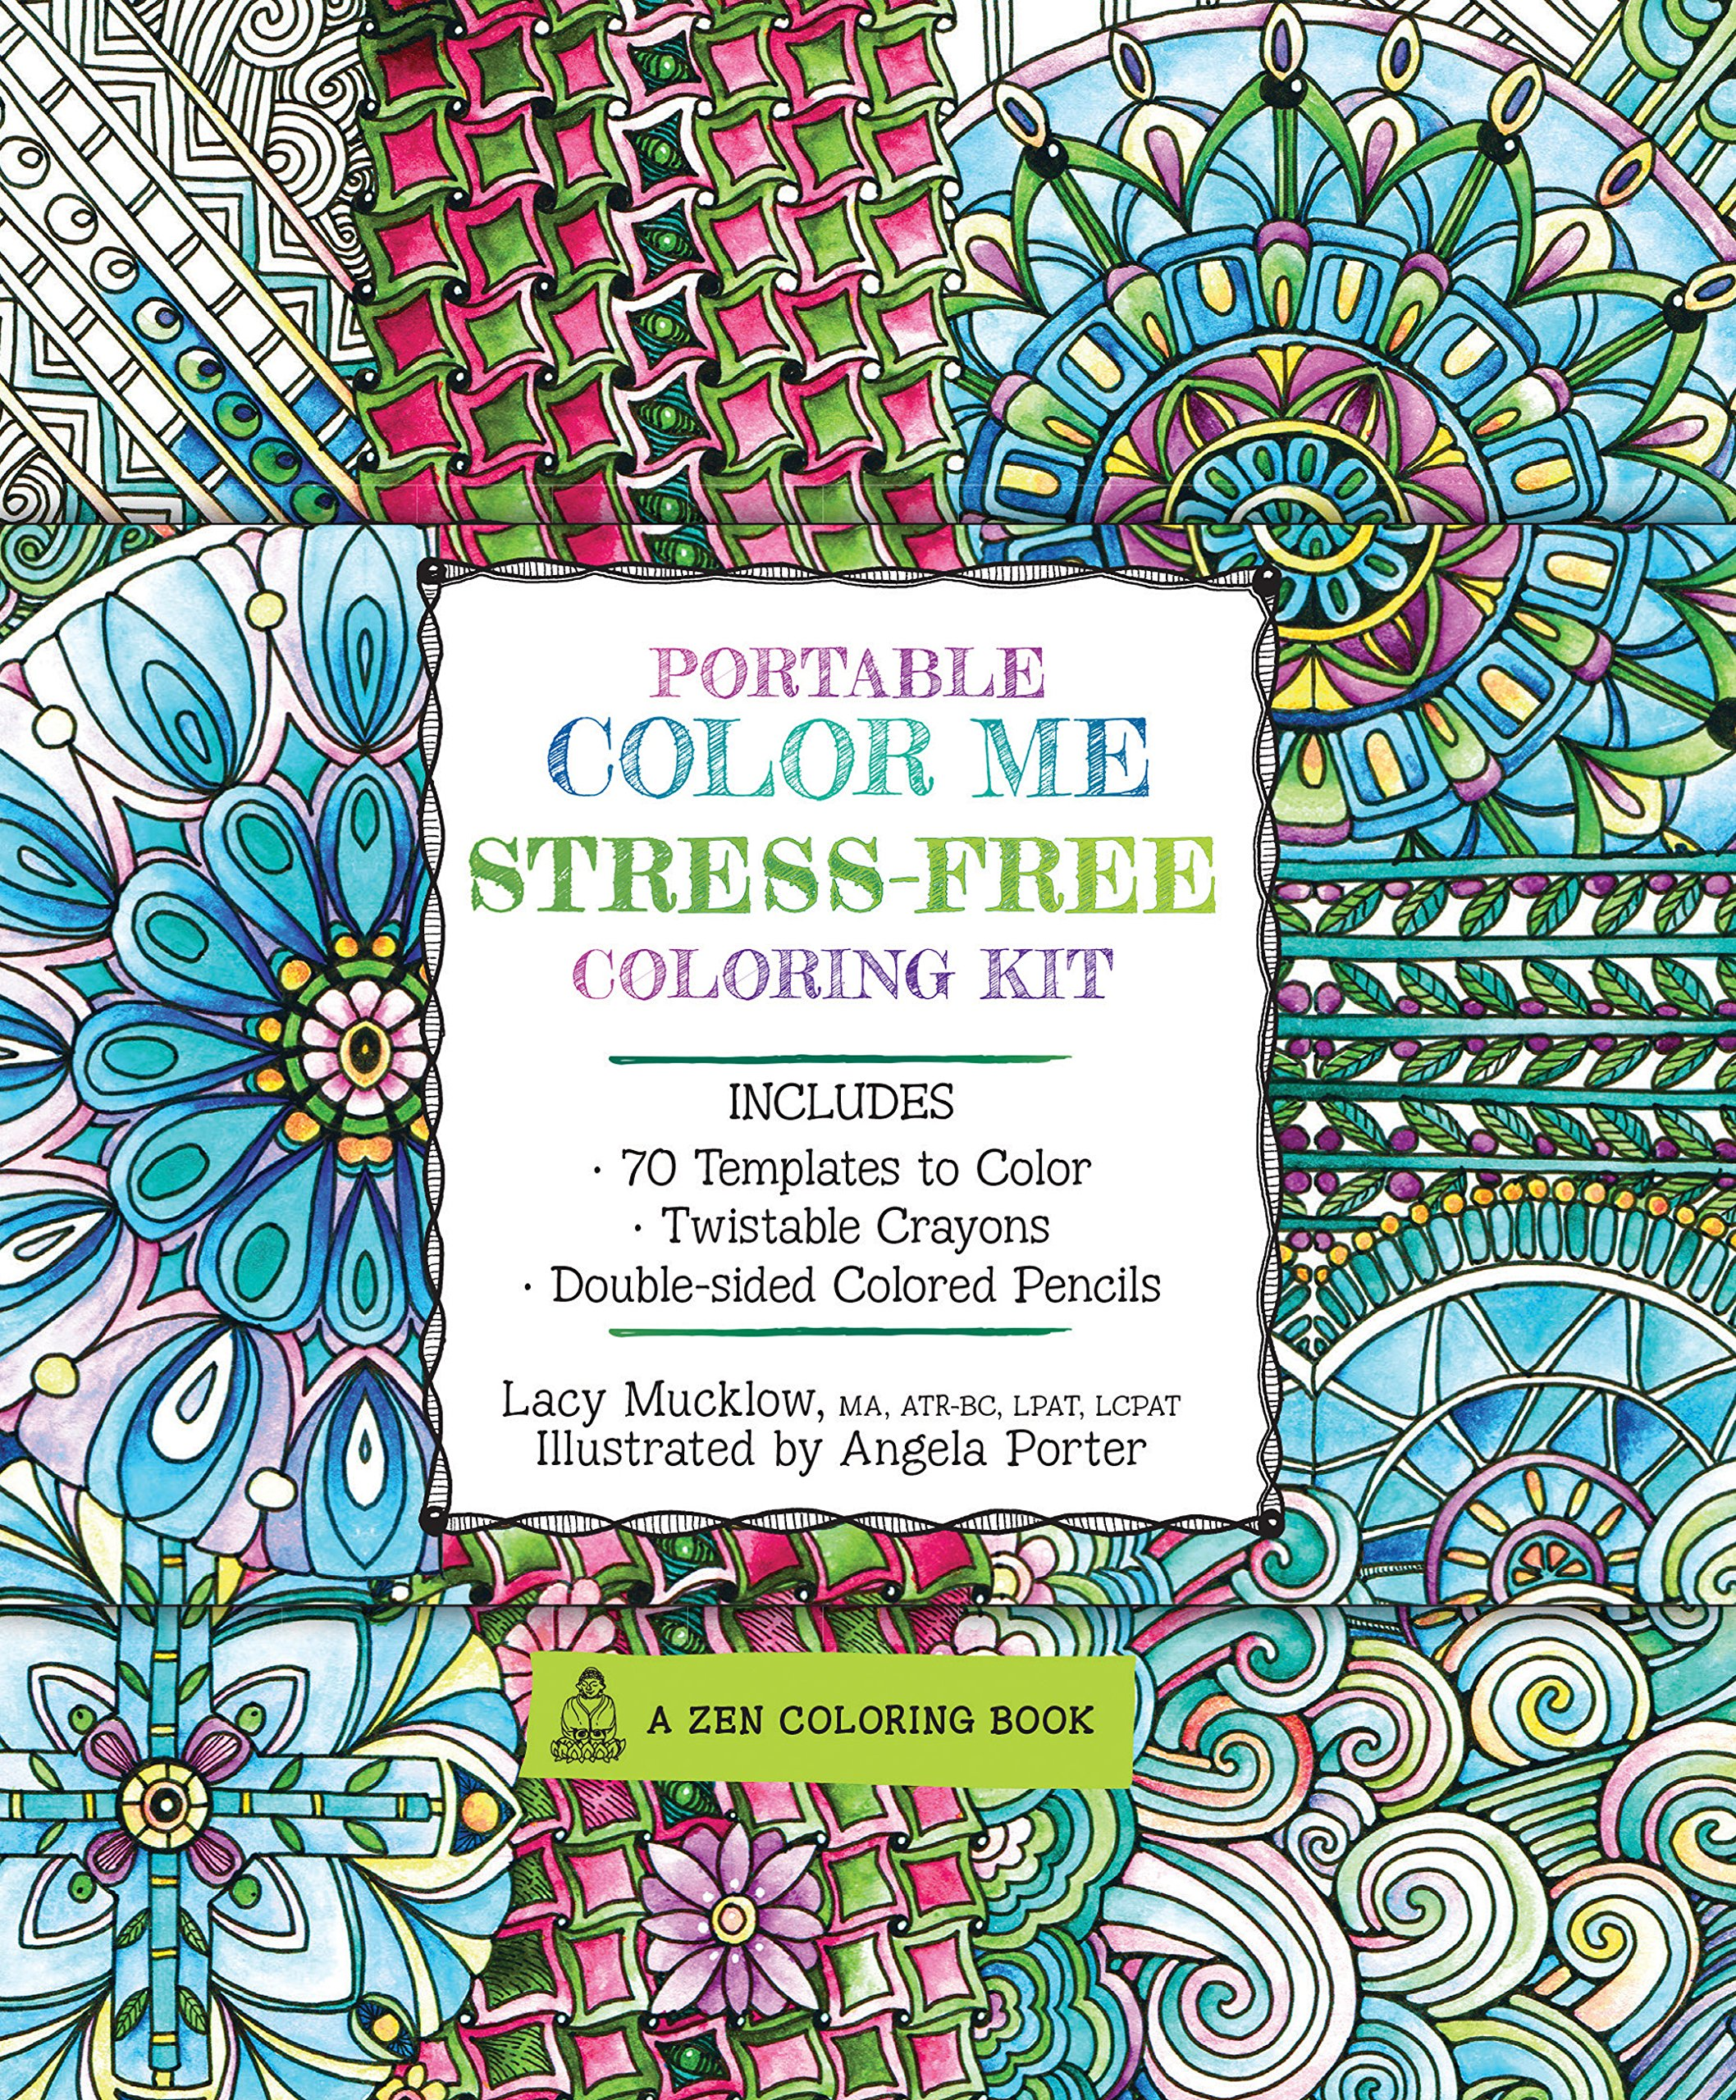 Portable Color Me Stress Free Coloring Kit Includes Book Colored Pencils And Twistable Crayons A Zen Lacy Mucklow Angela Porter